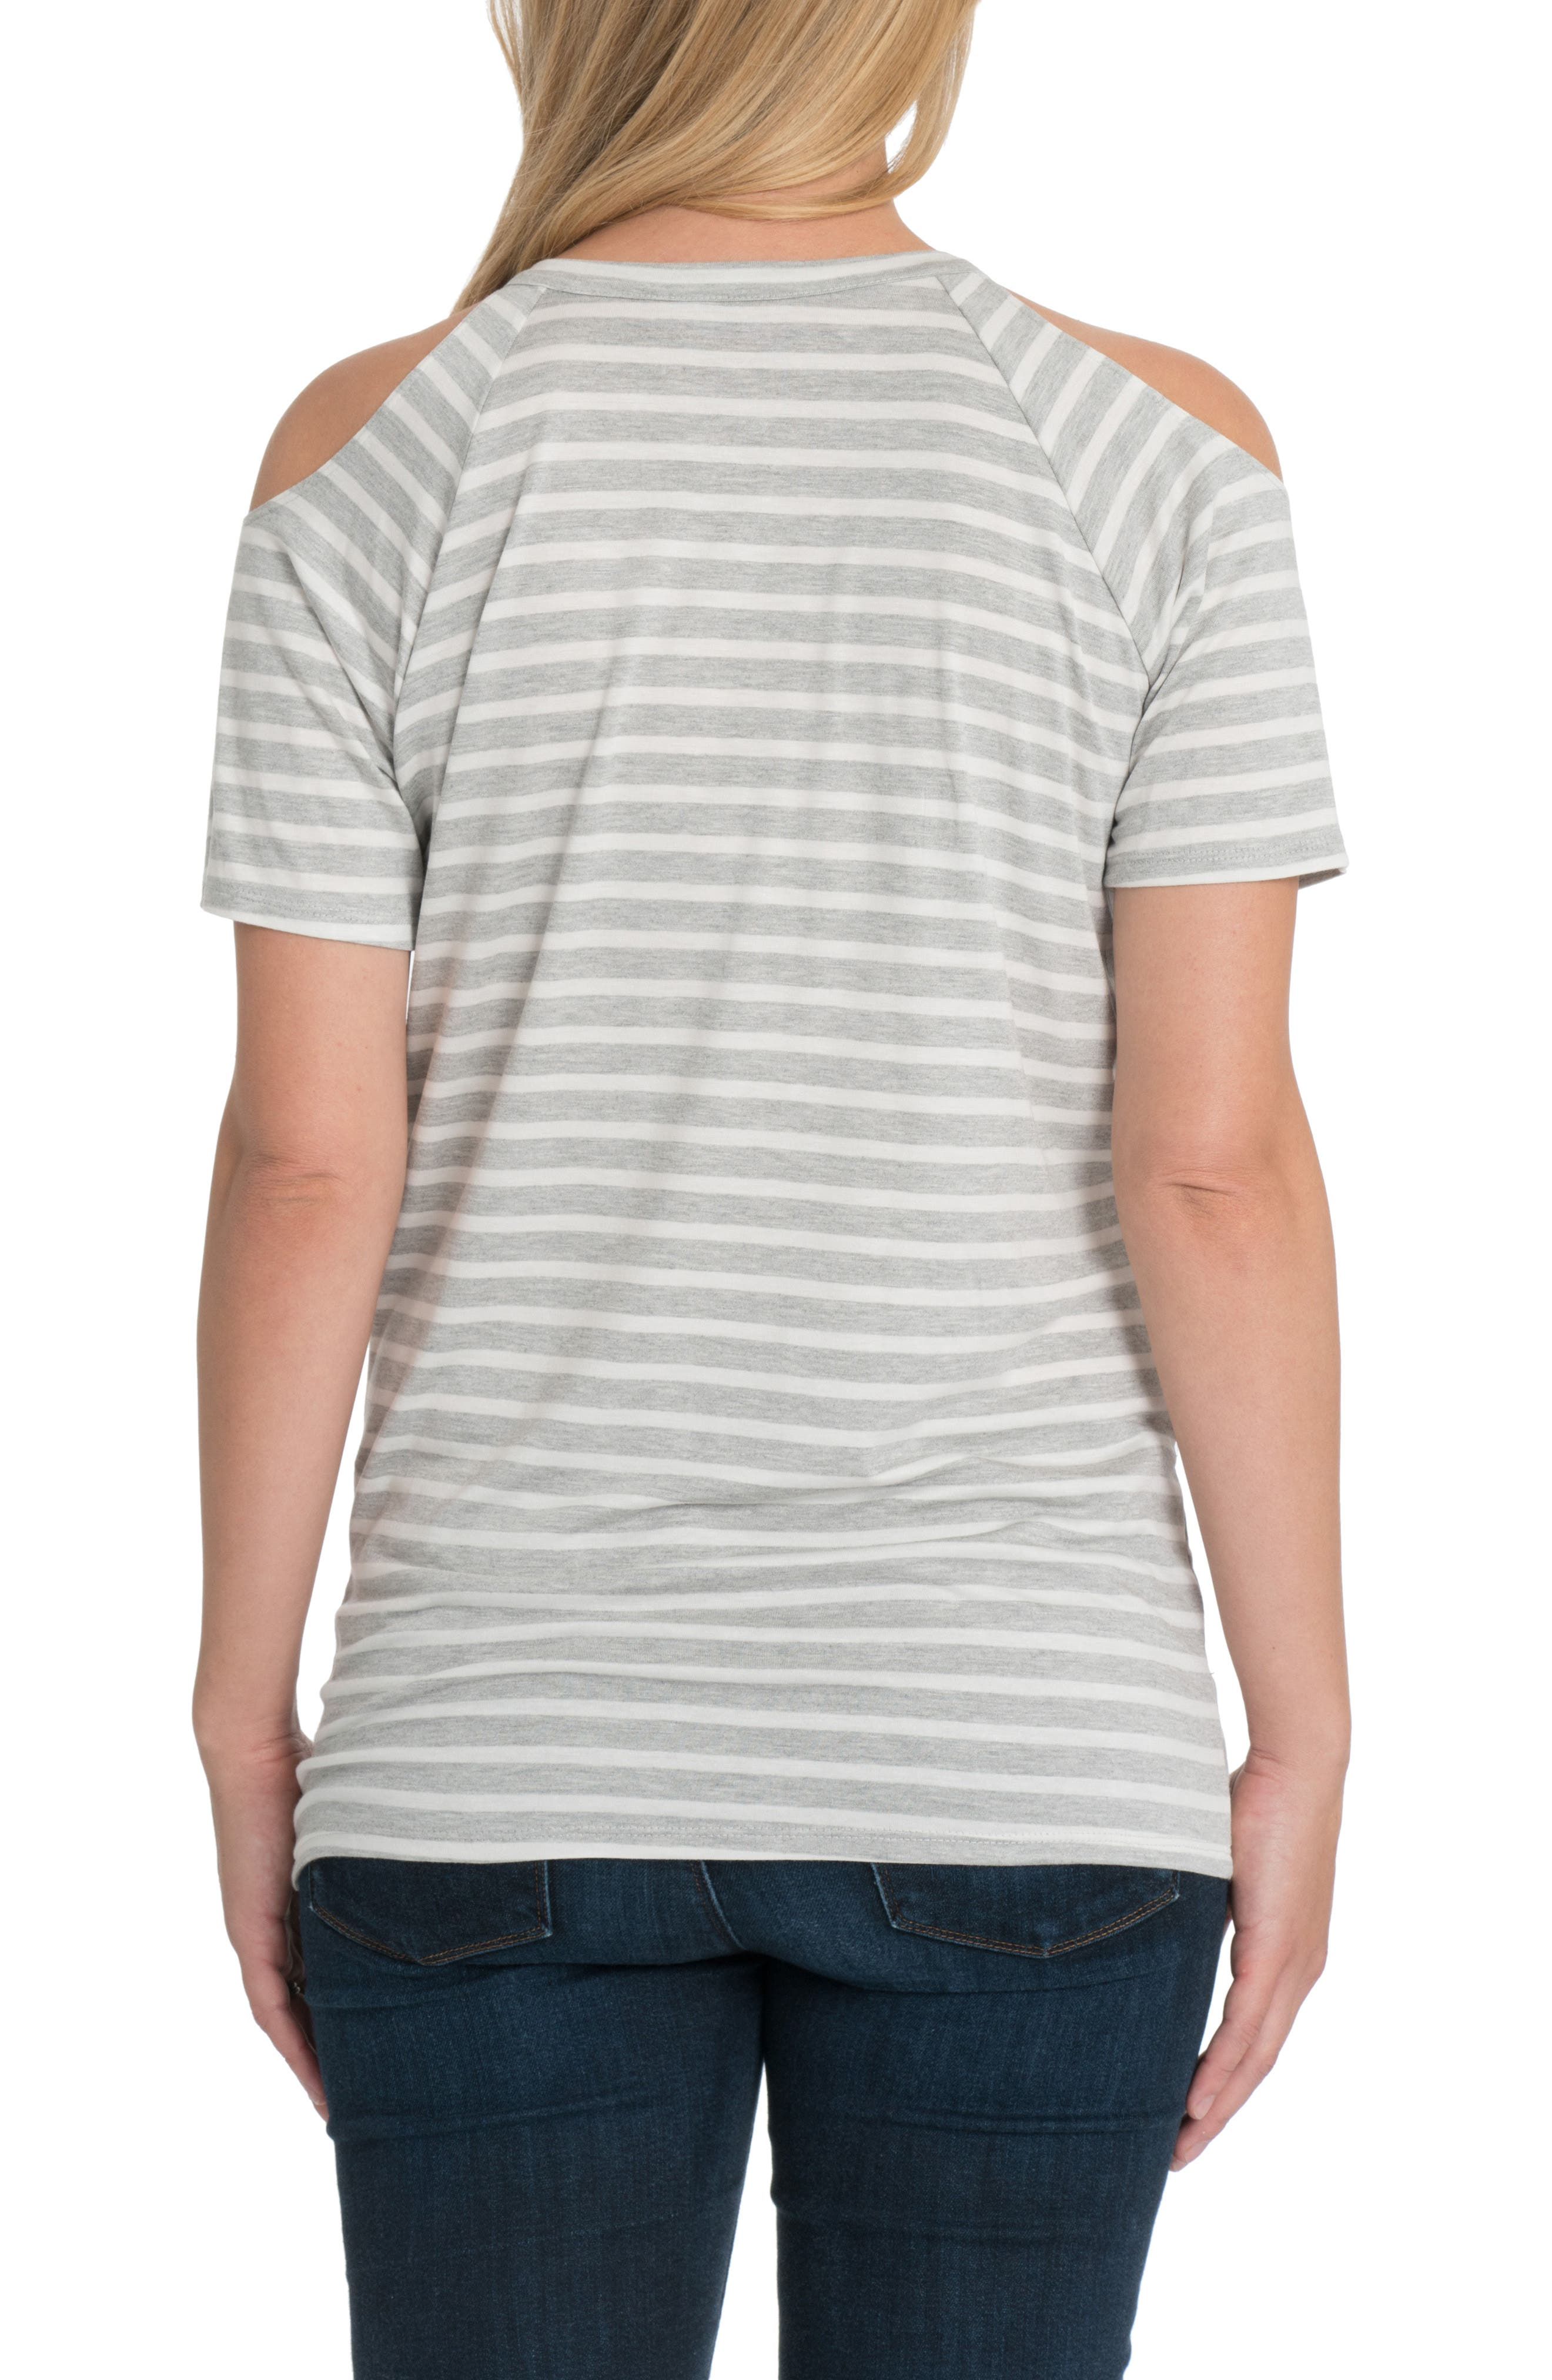 Bliss Cold Shoulder Maternity/Nursing Tee,                             Alternate thumbnail 2, color,                             Gray And White Stripe